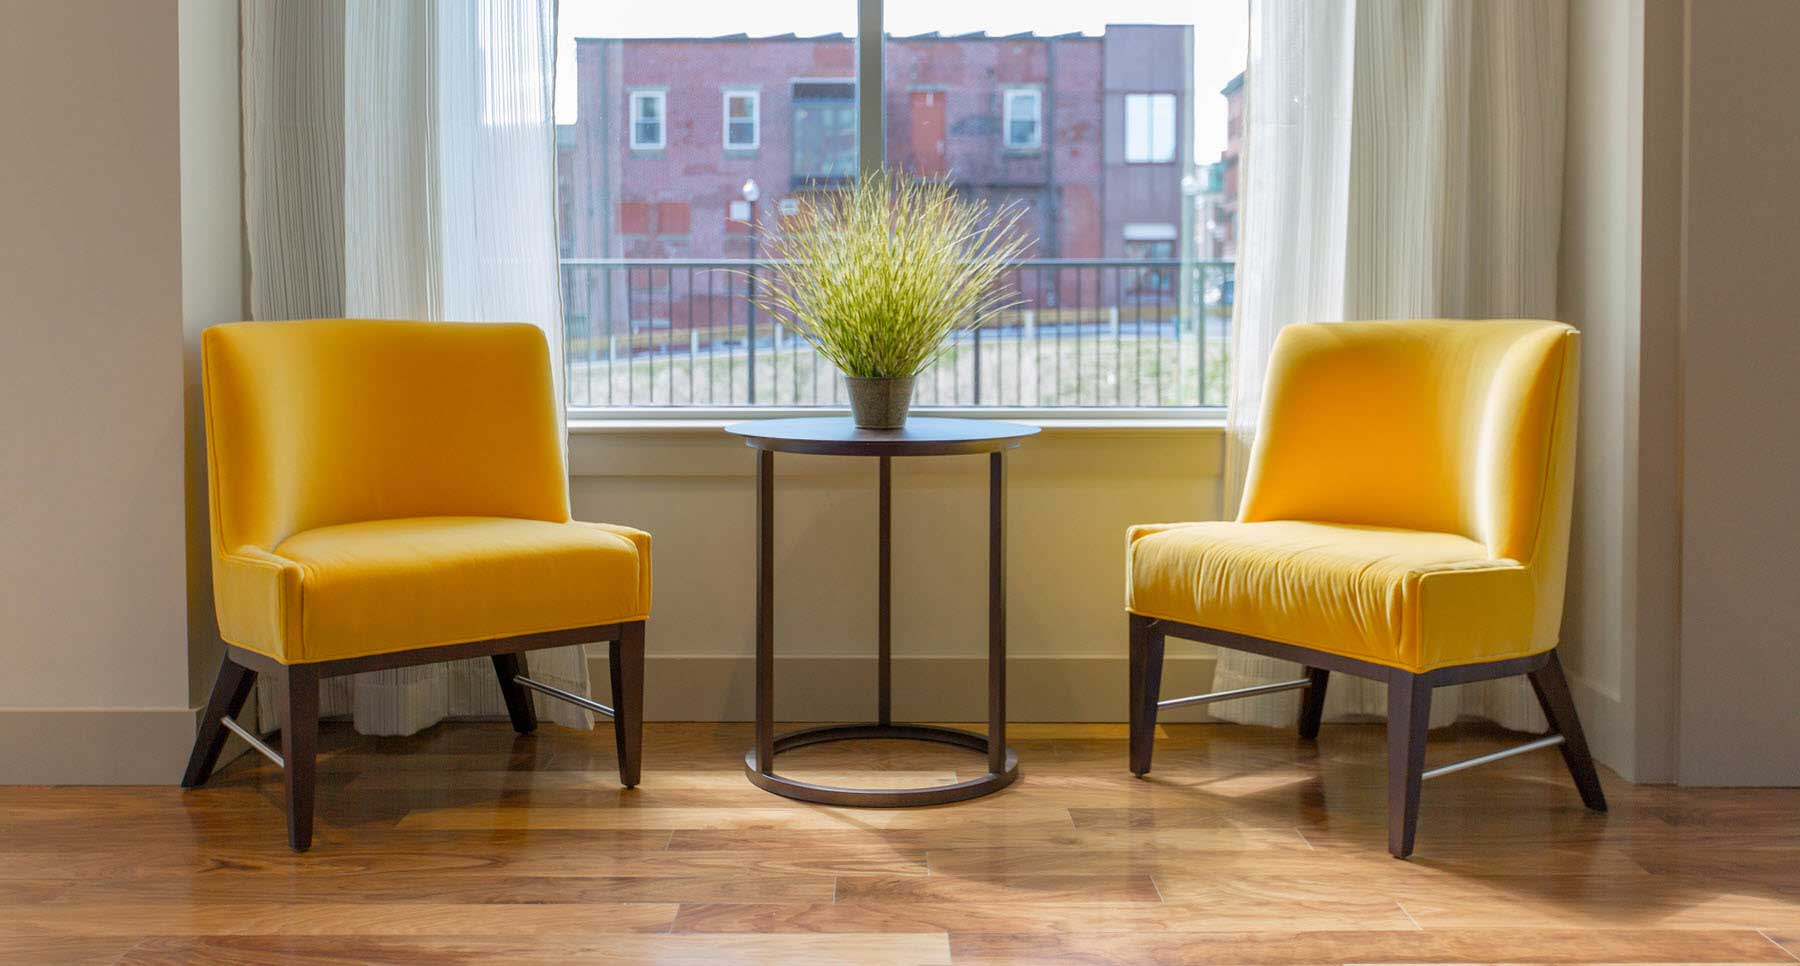 two yellow chairs facing each other ready for a professional counseling session